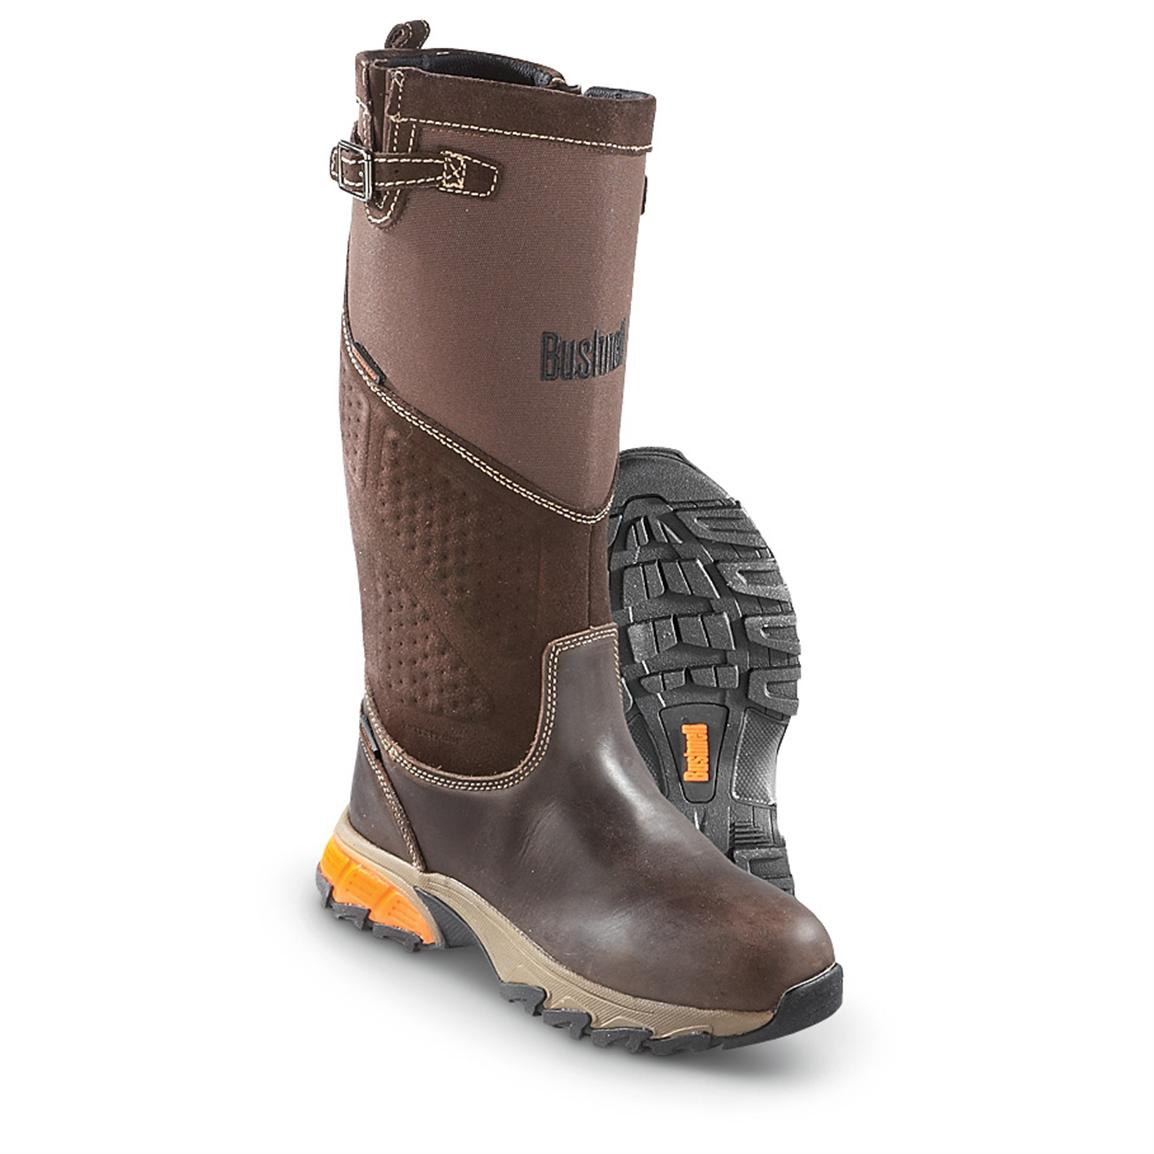 Men's Bushnell® Snakepro Waterproof Boots, Brown